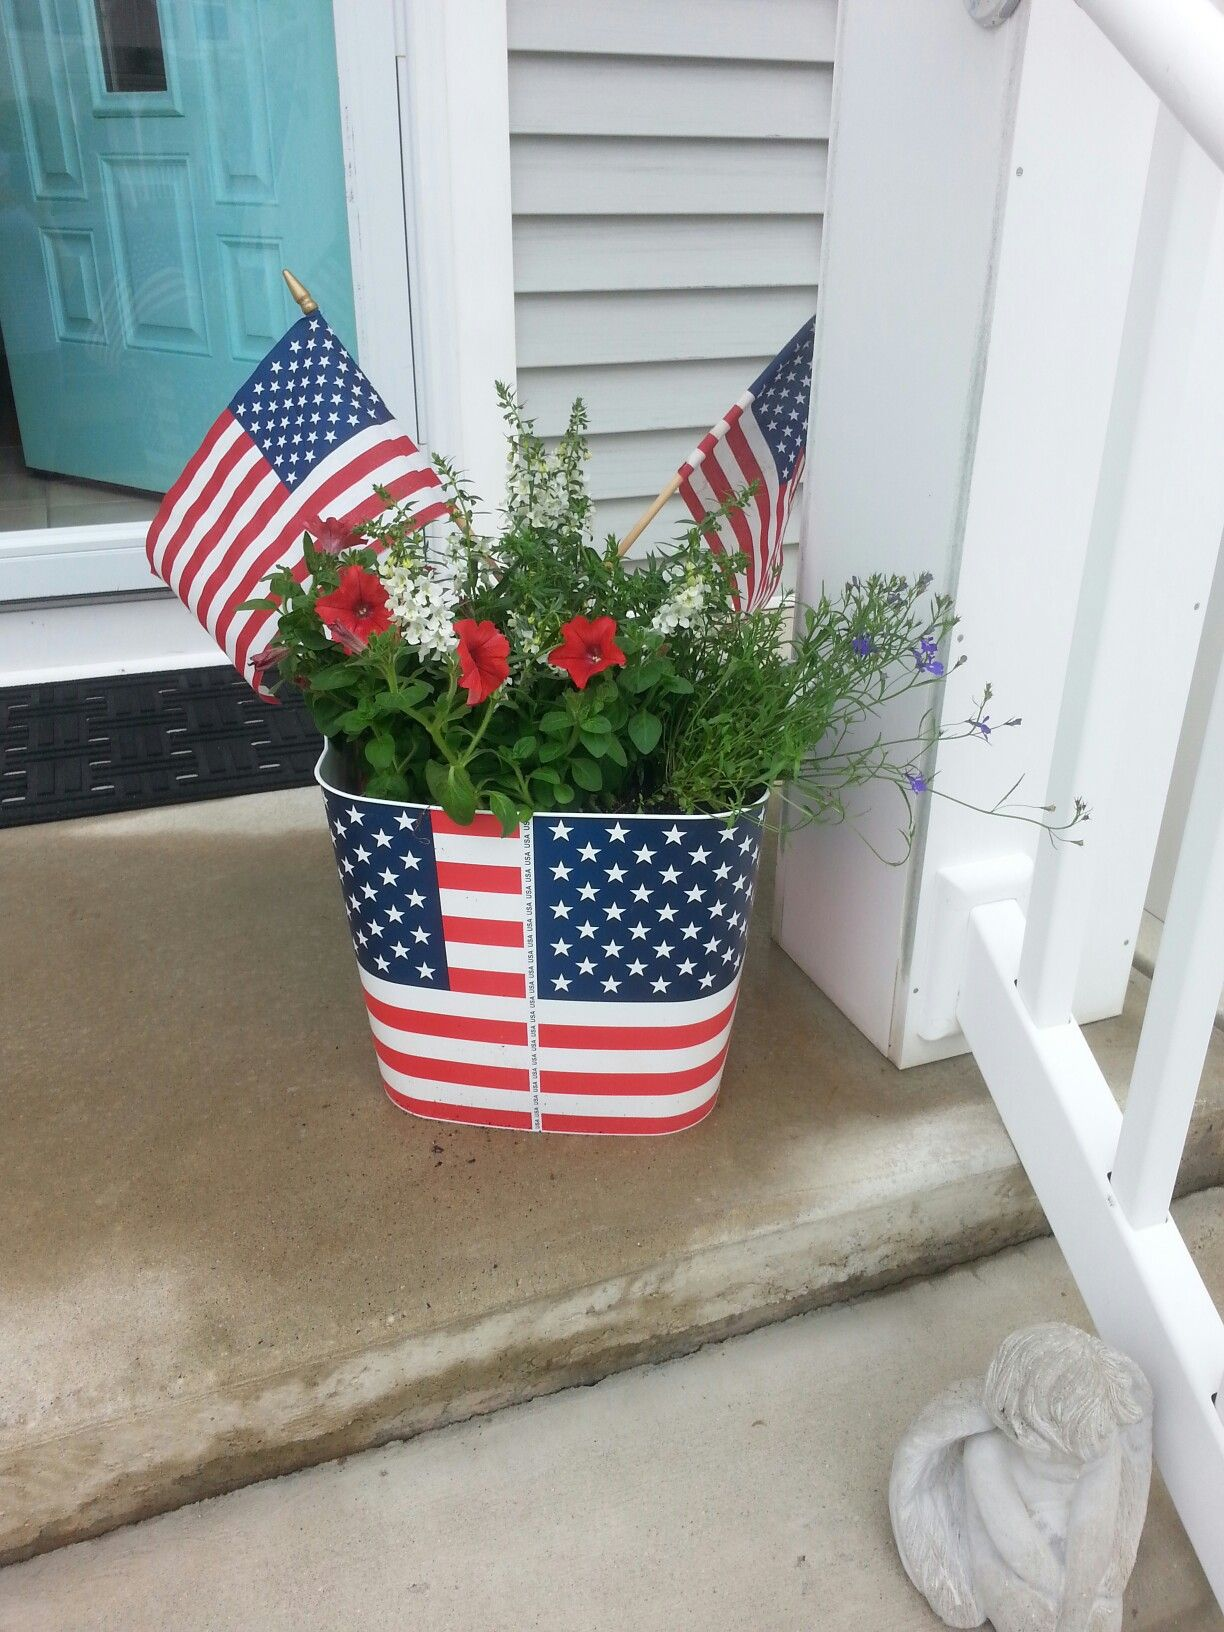 Stars and stripes trug from Lowes garden center